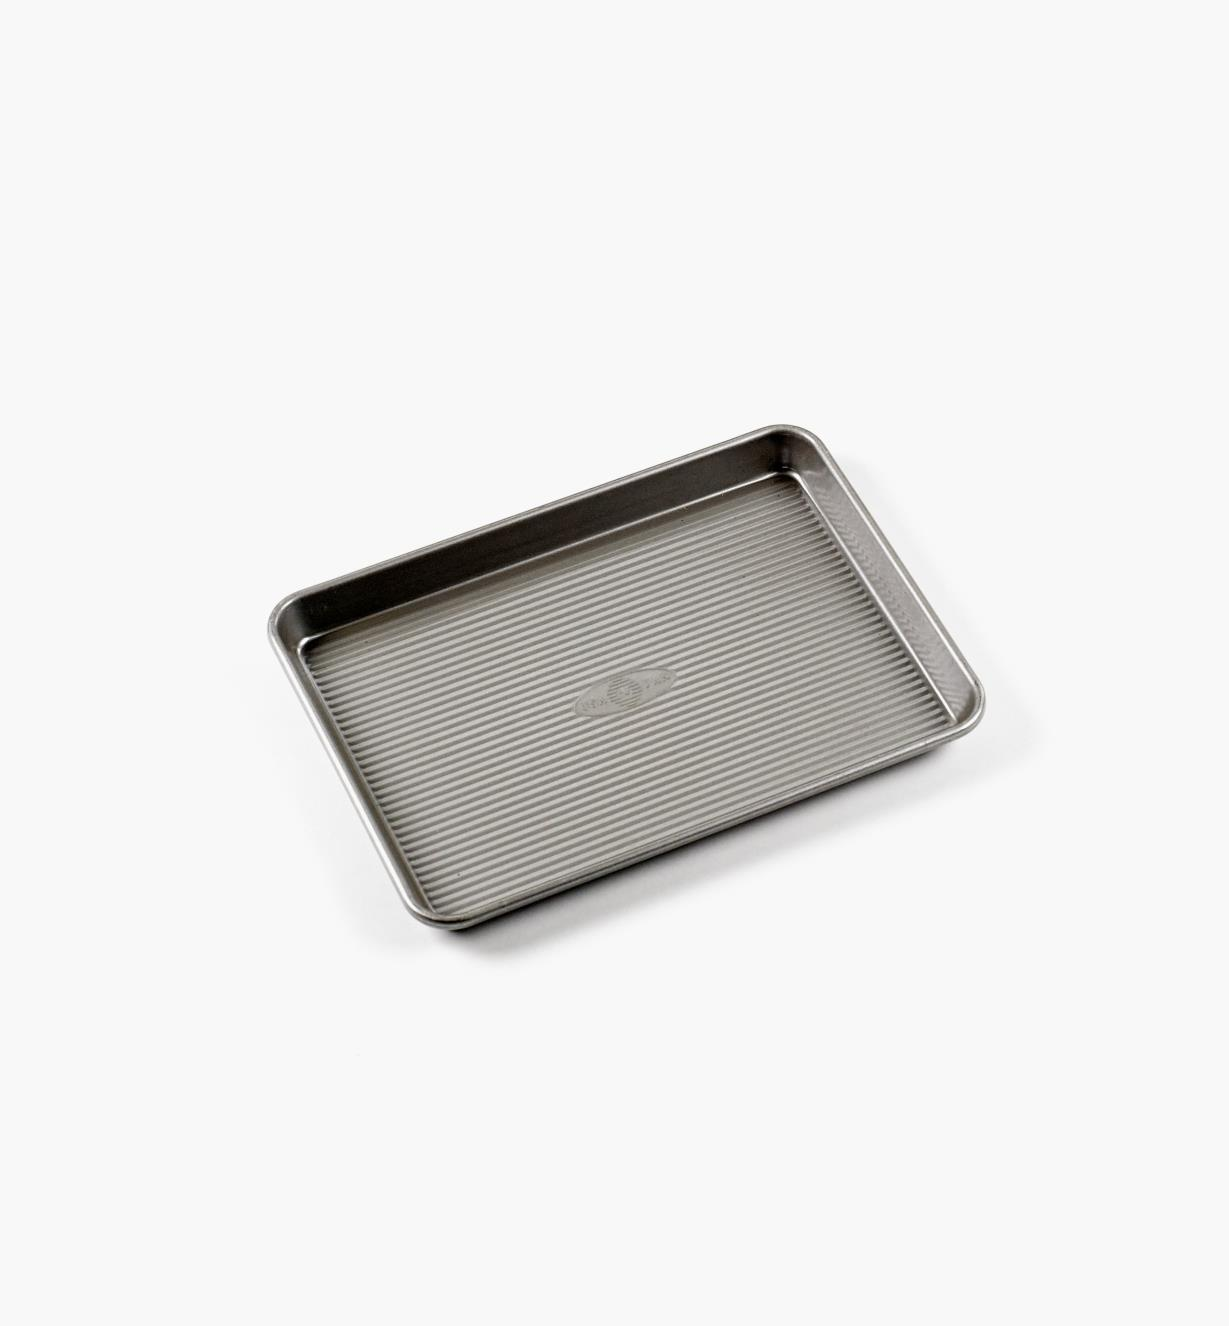 EV692 - Quarter Sheet Baking Pan